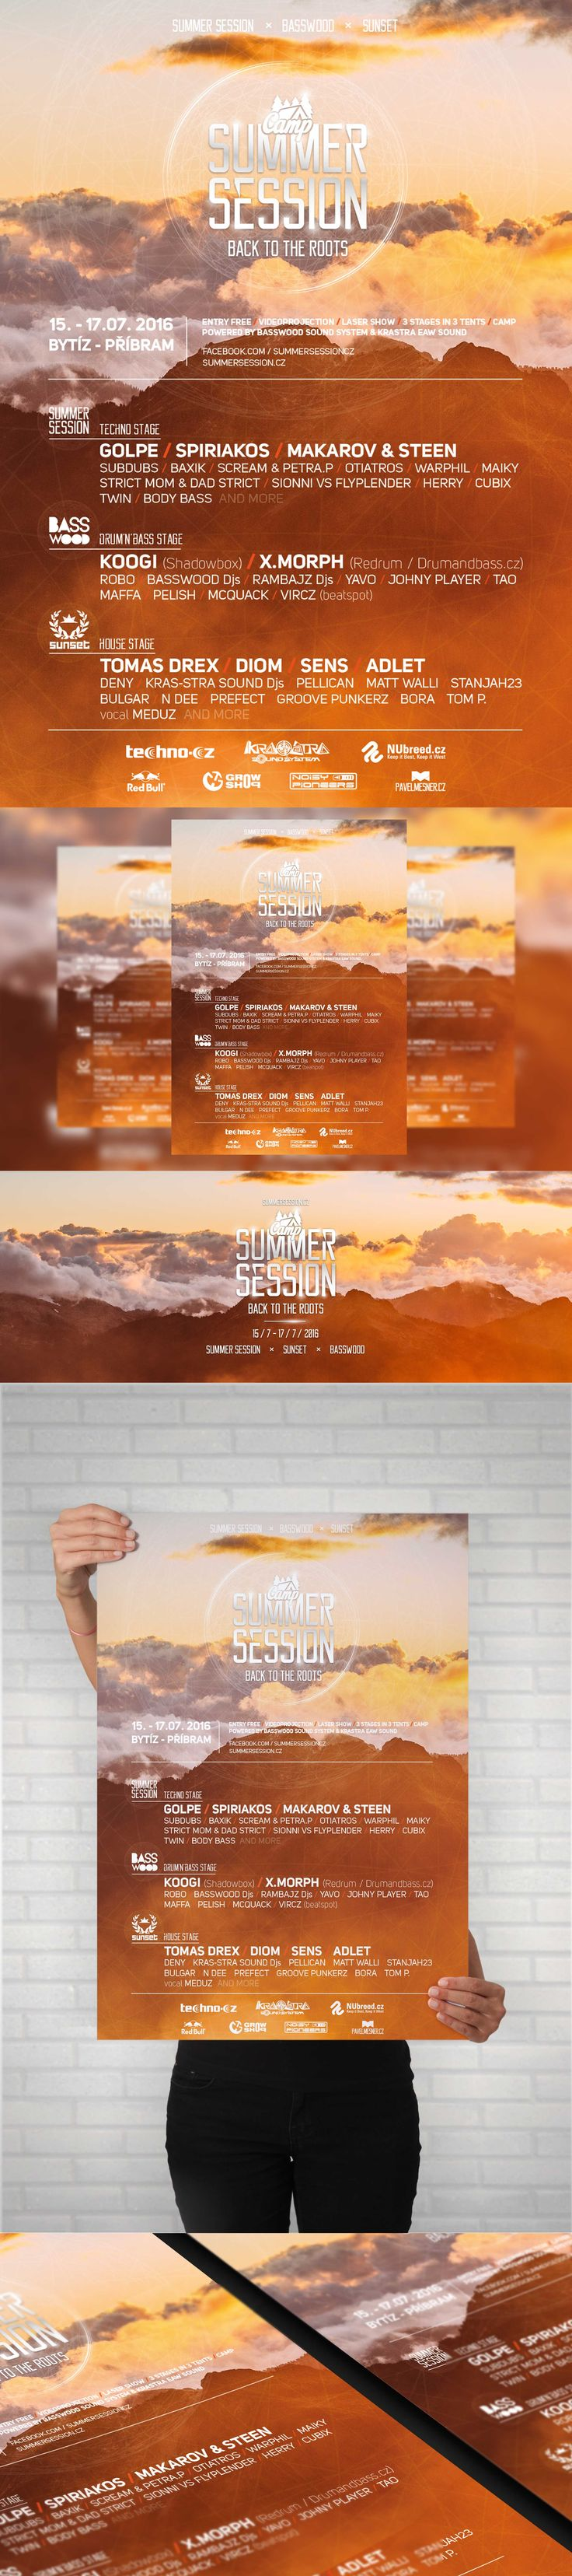 Summer session camp 2016 Electronic music event - A3, A4, A5 Poster, Facebook event header and preview.  #poster #posterdesign #fbheader #graphicdesign